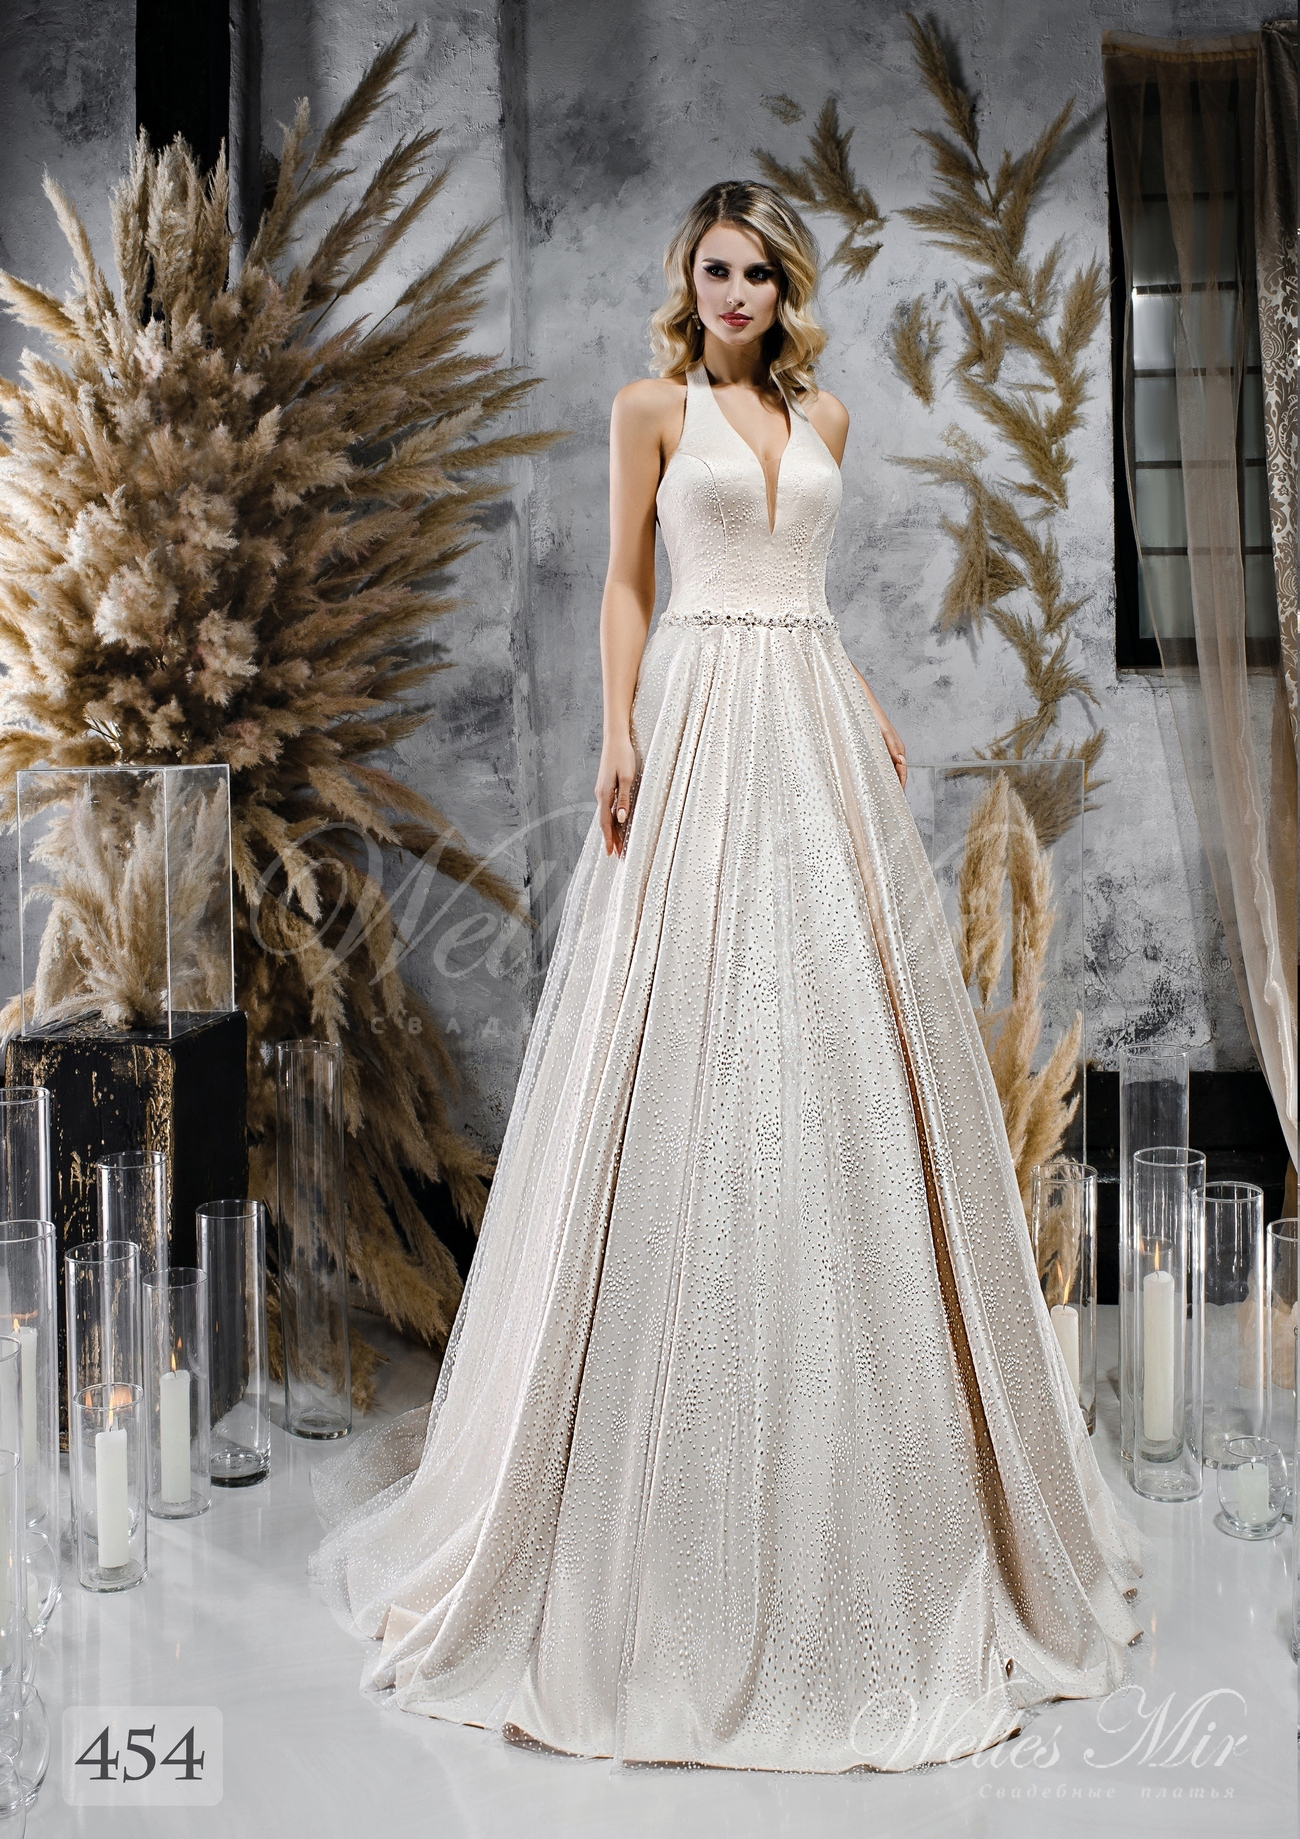 Satin wedding dress A-line with strap over neck wholesale from WellesMir